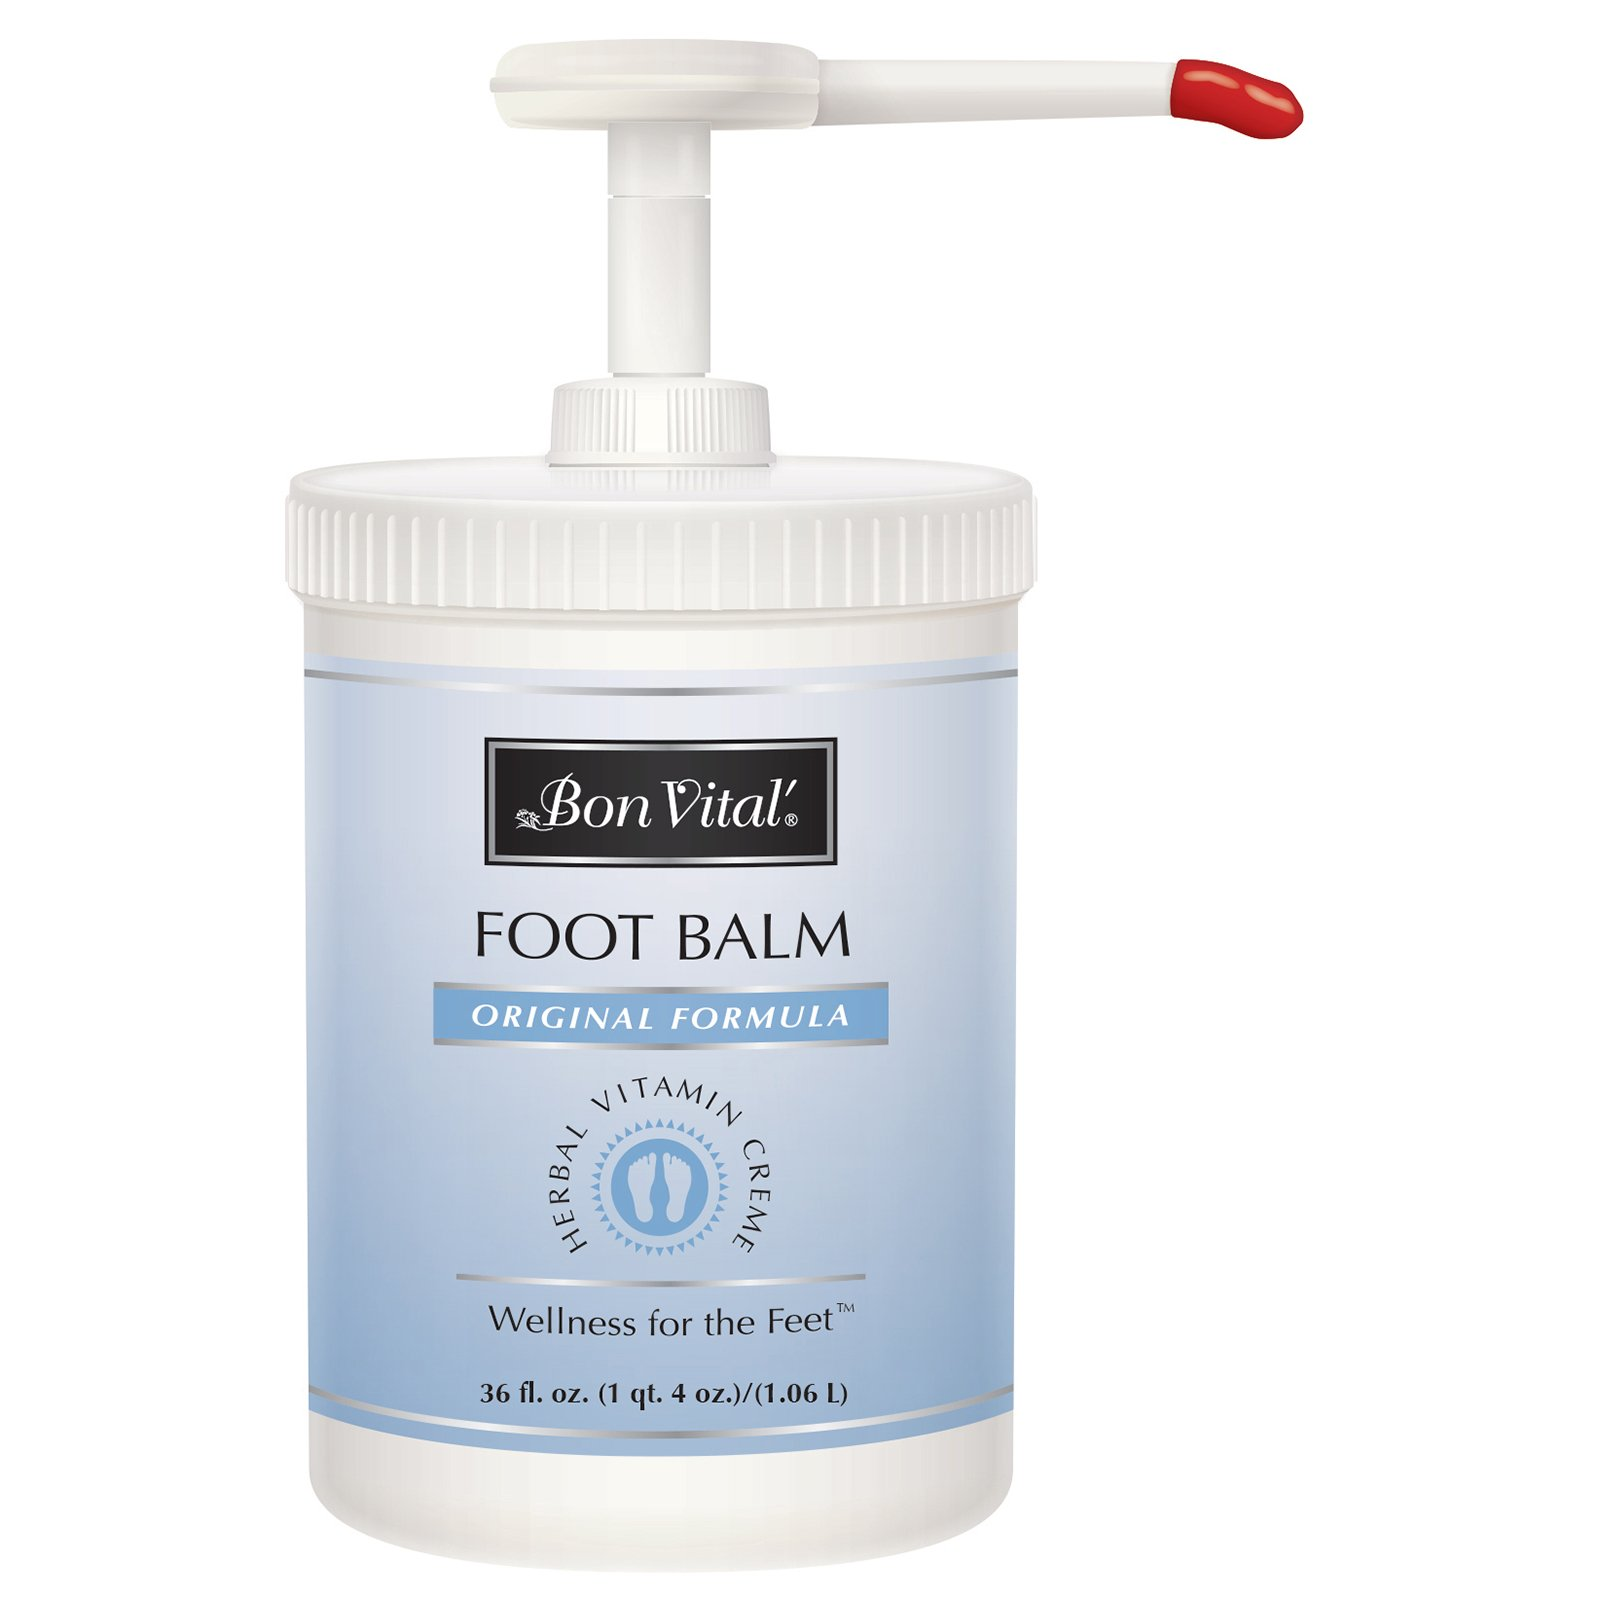 Bon Vital' Original Foot Balm Dry Cracked Feet Heels, Promotes Healthy Feet Speeds Healing Blisters Abrasions on Heel, Increases Circualtion in Feet, 36 Oz Pump Jar